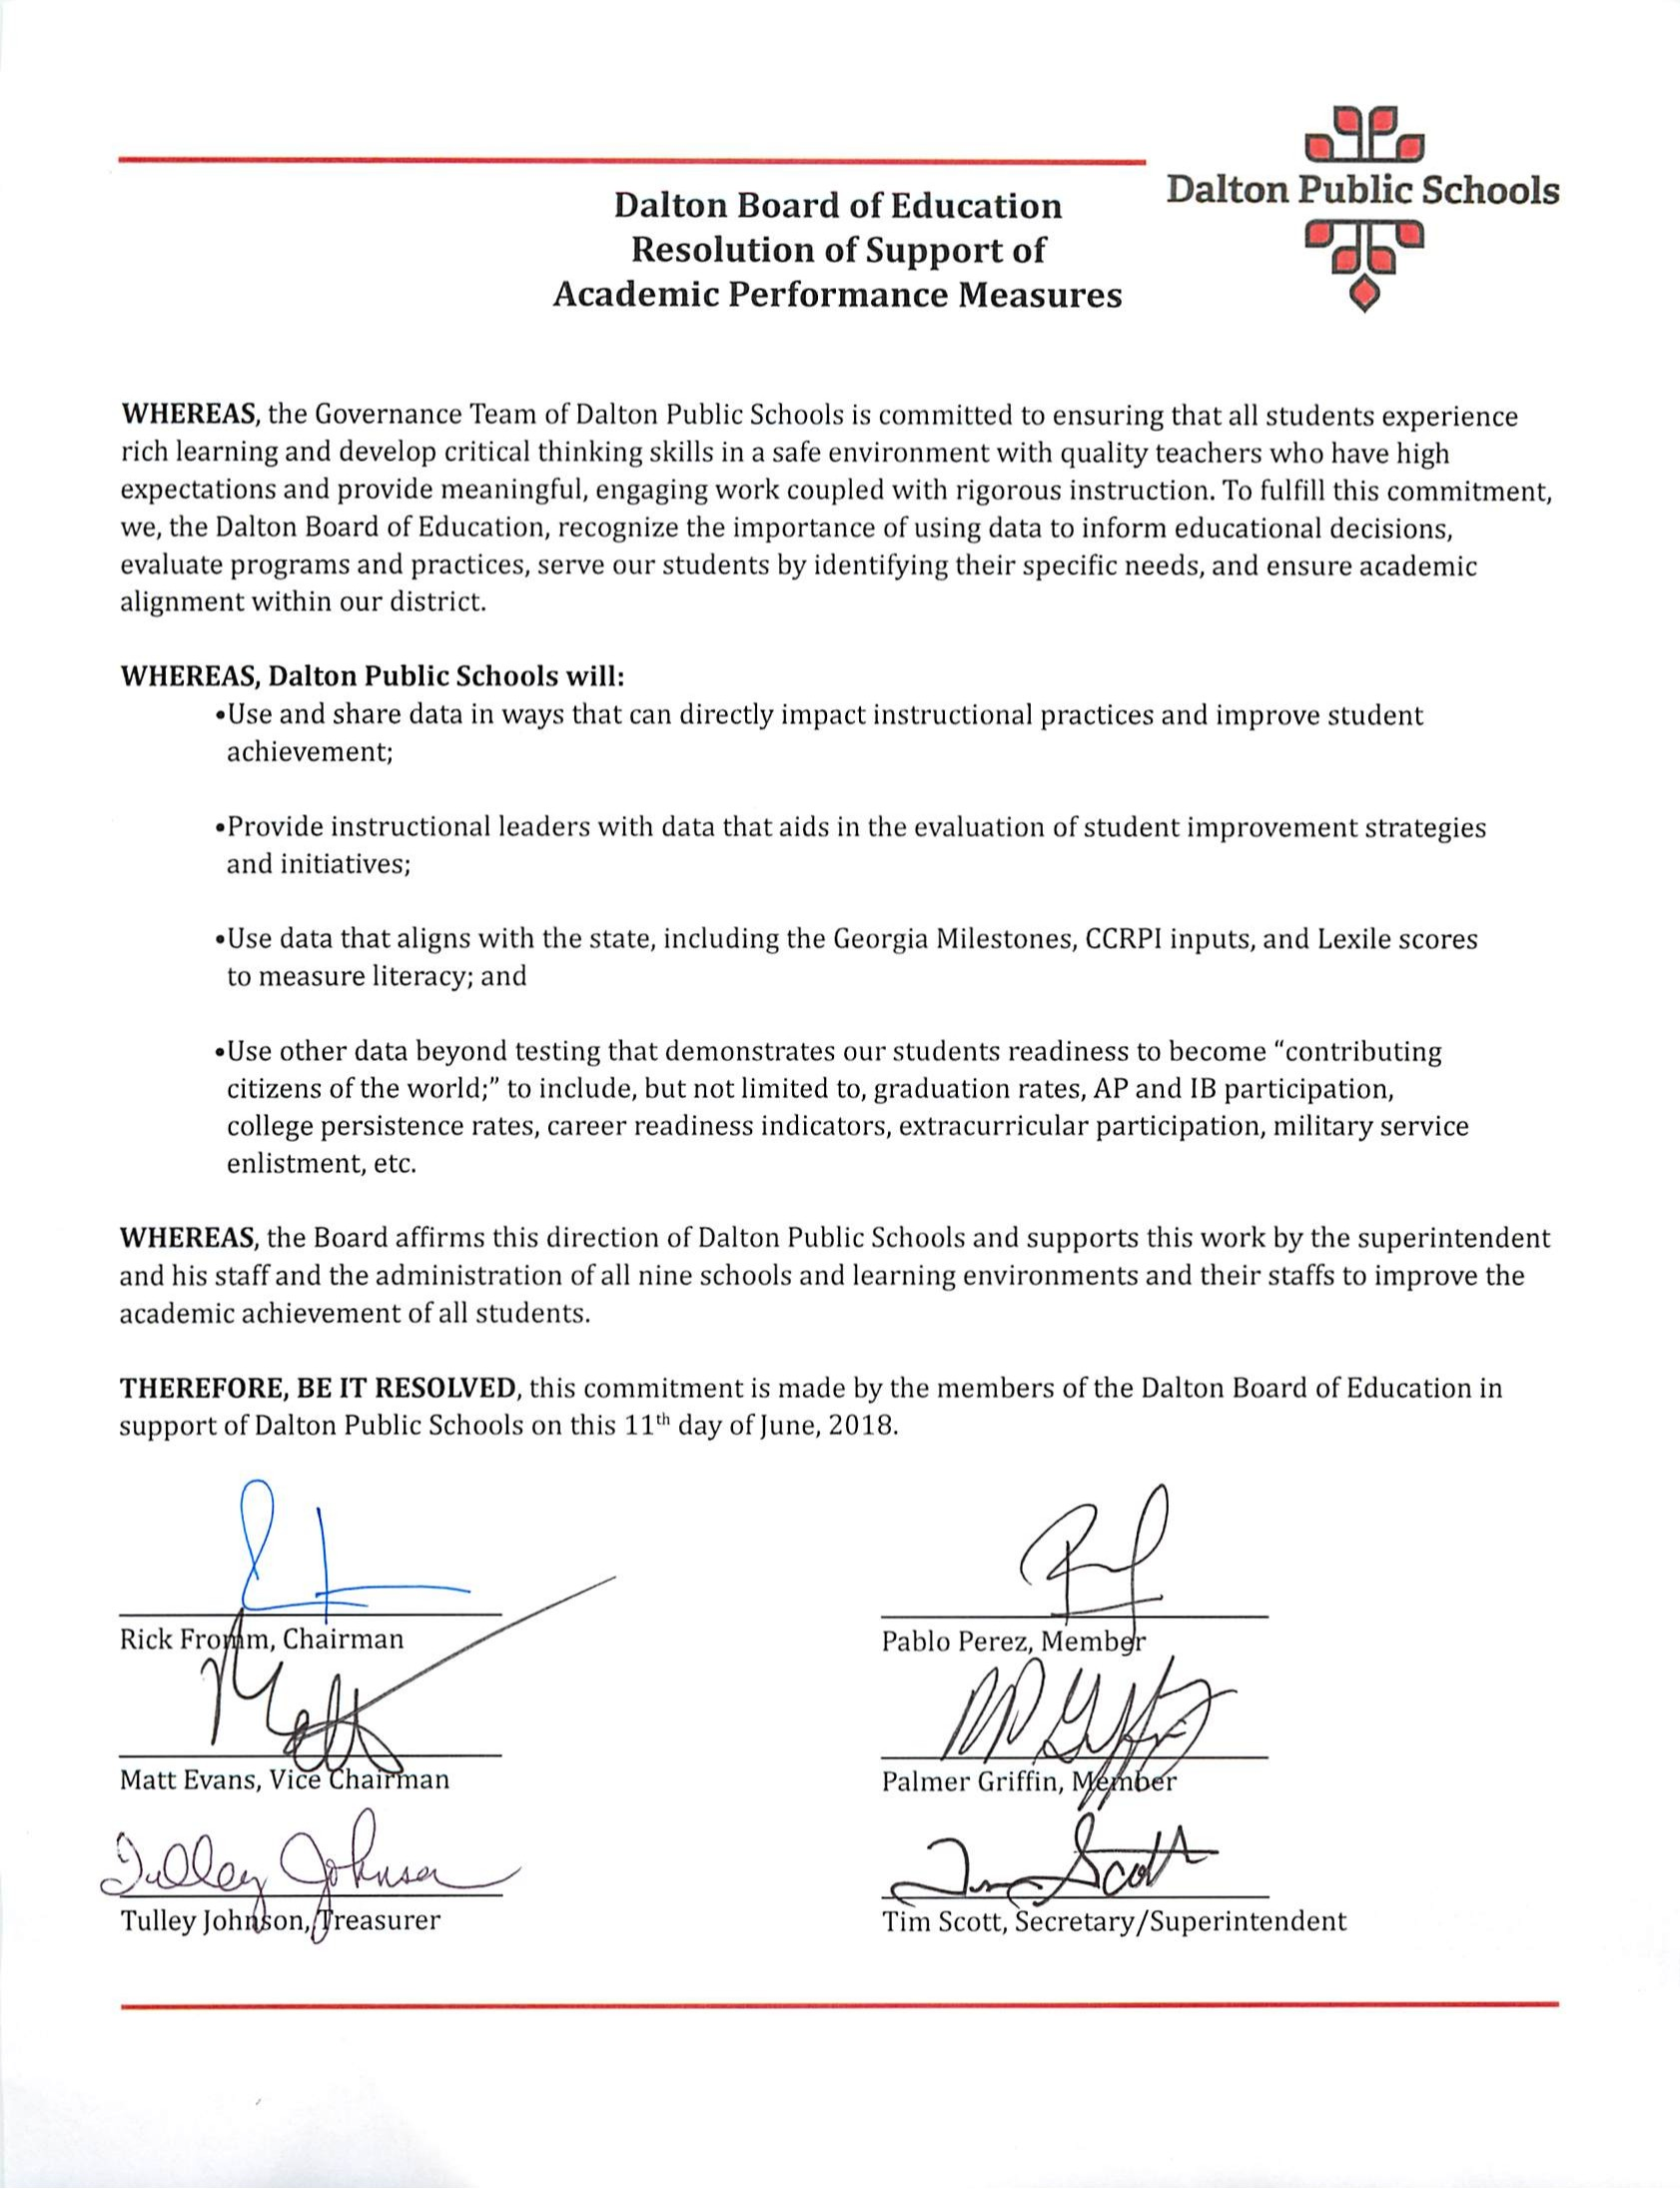 Board of Education Resolution of Support